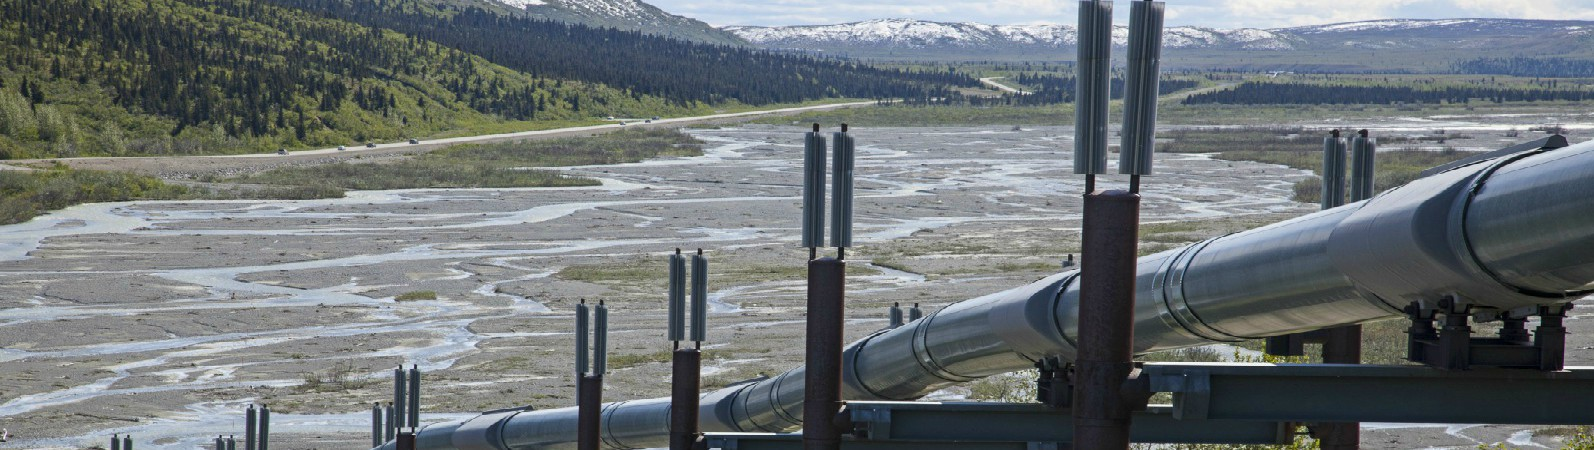 The 800-mile Trans-Alaska Pipeline runs alongside the Gulkana River.